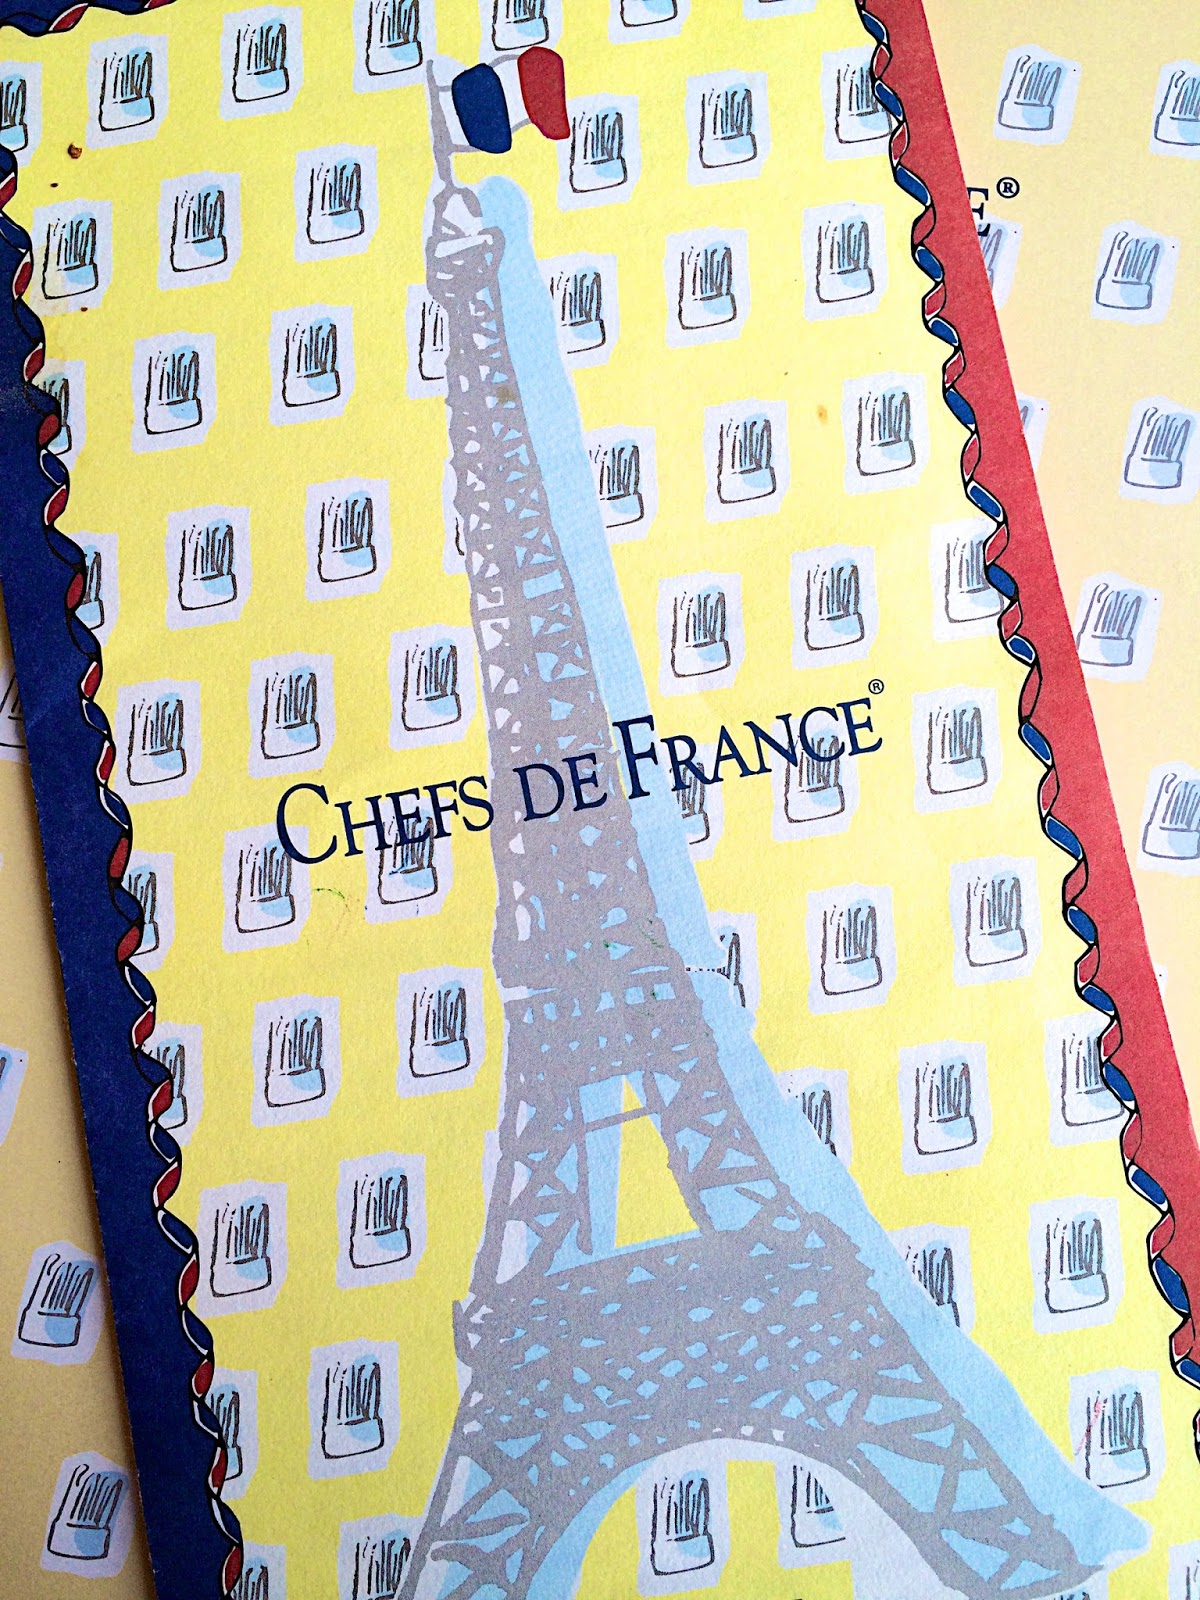 Les Chefs De France - Epcot - Walt Disney World